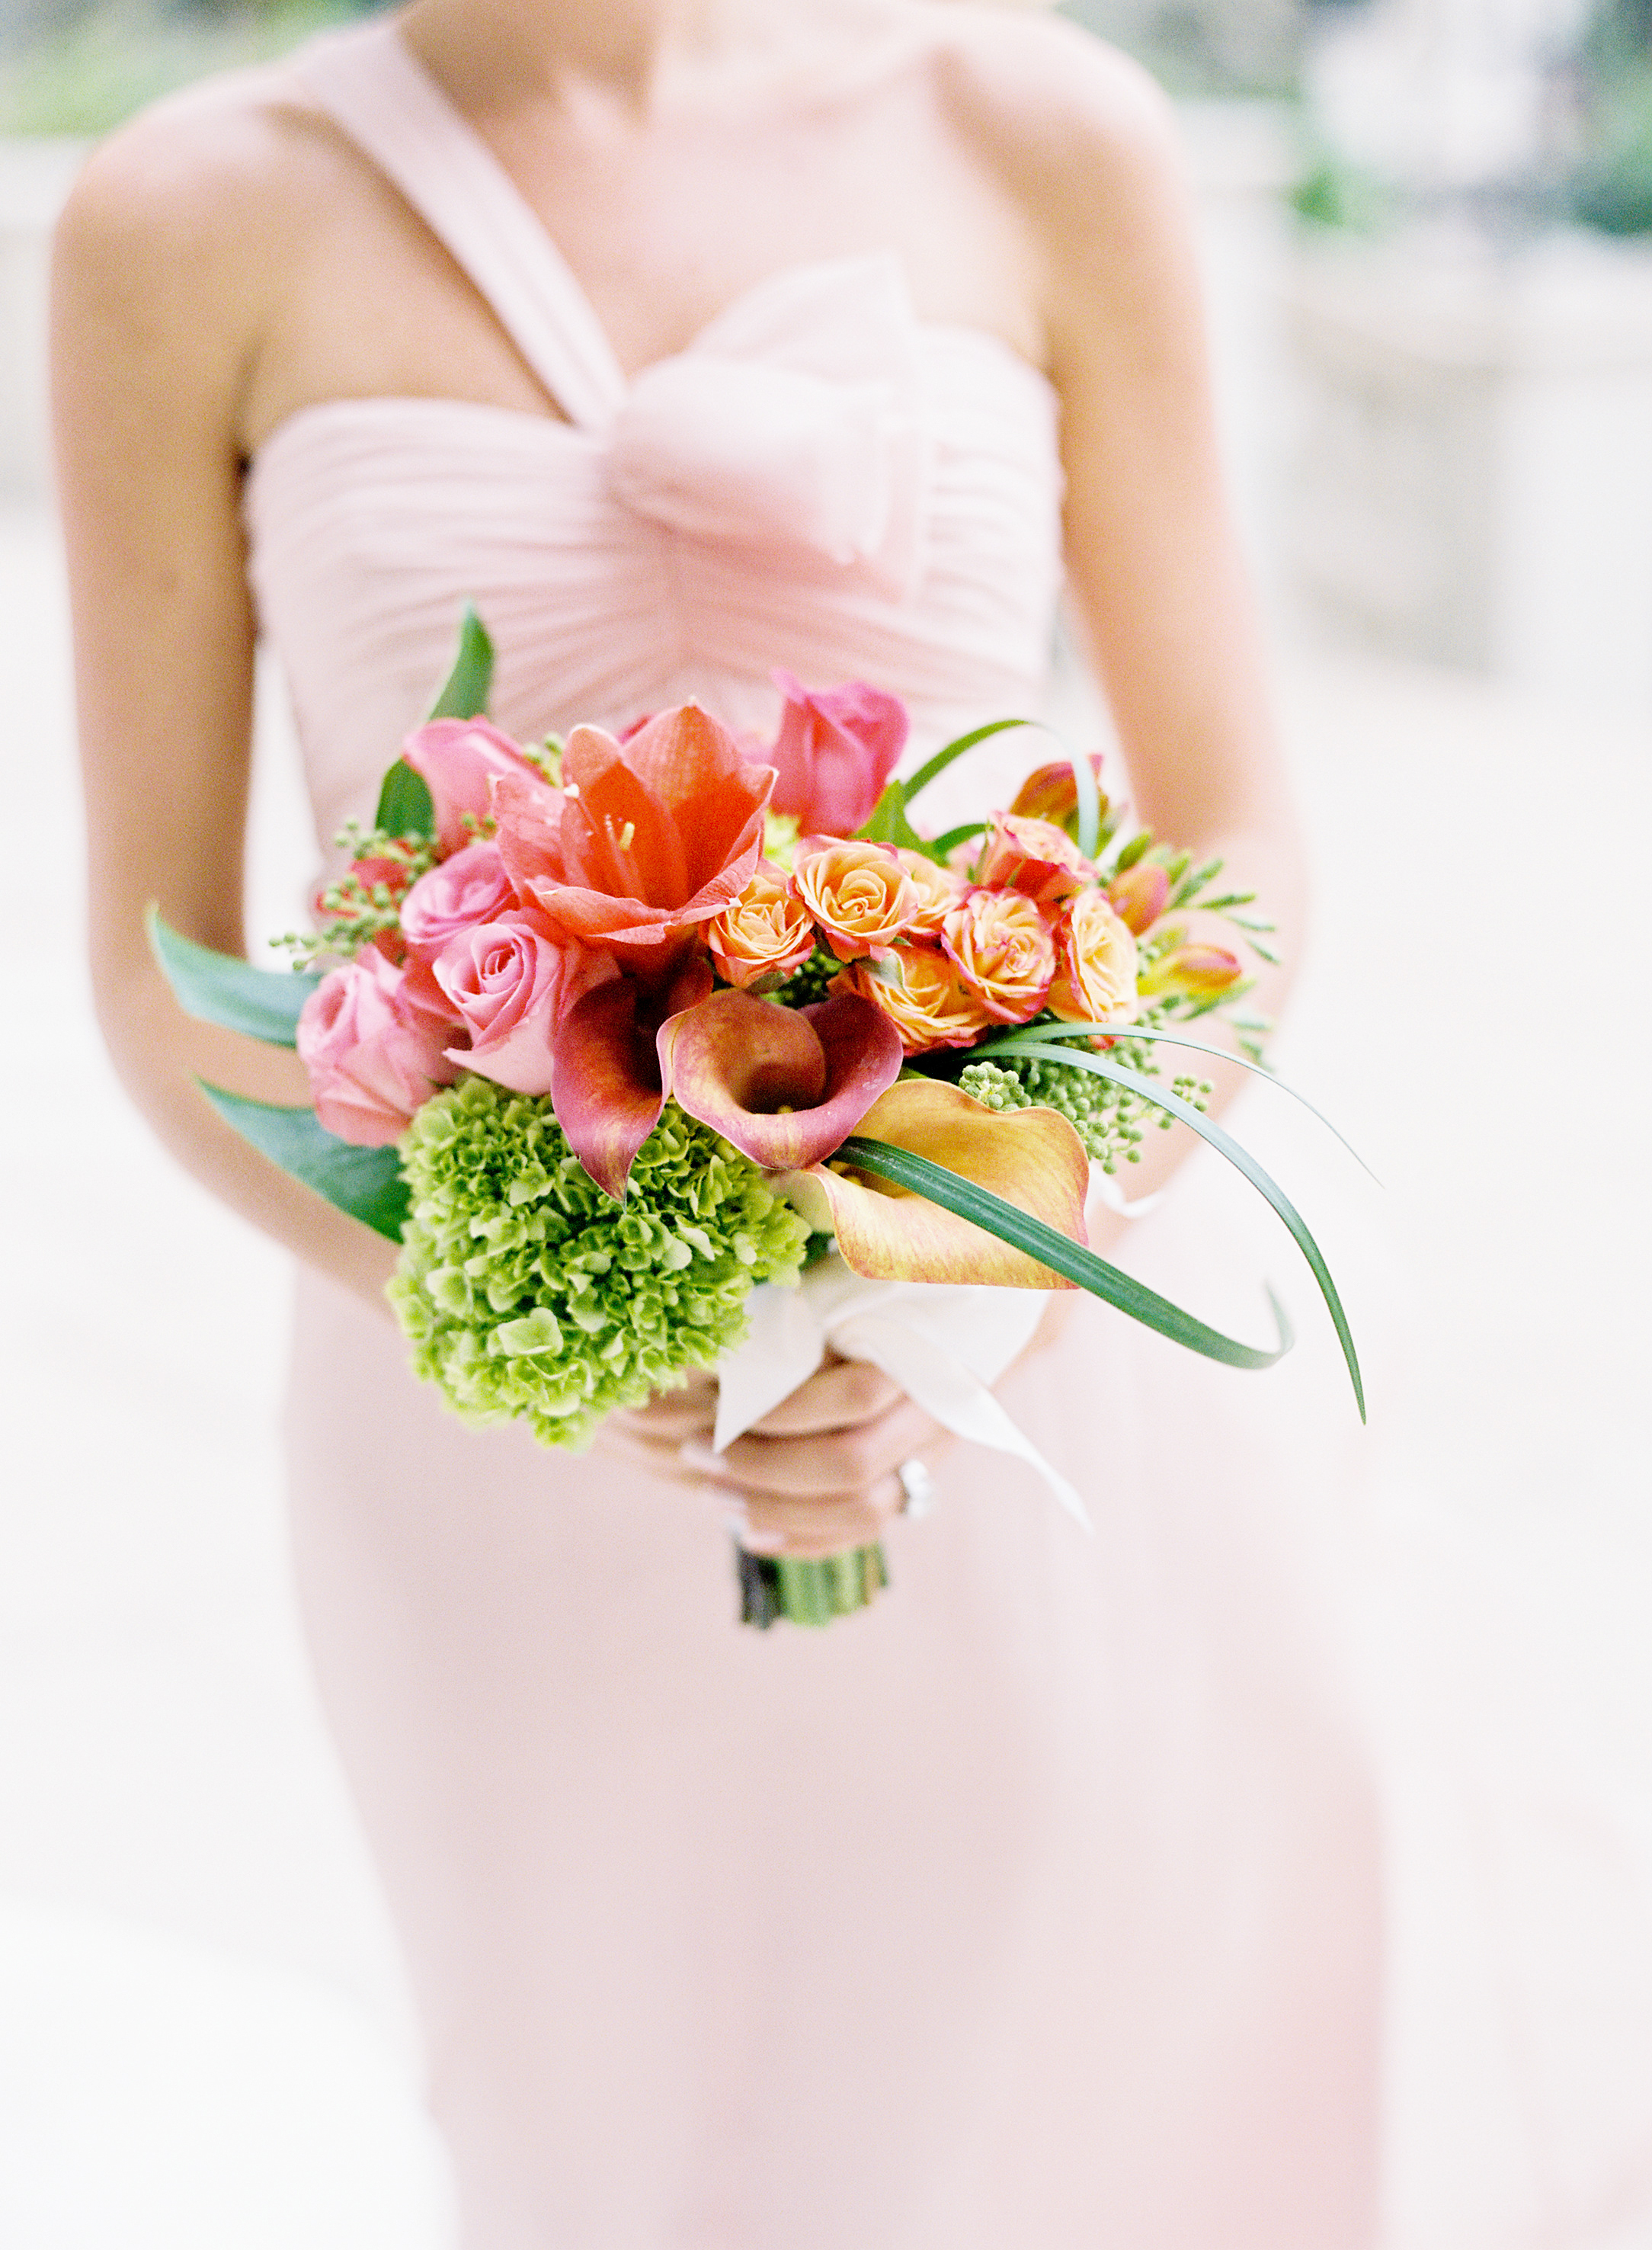 green, Bouquet, Lilies, Hydrangeas, Coral, Blush, Karina mike, One-shoulder